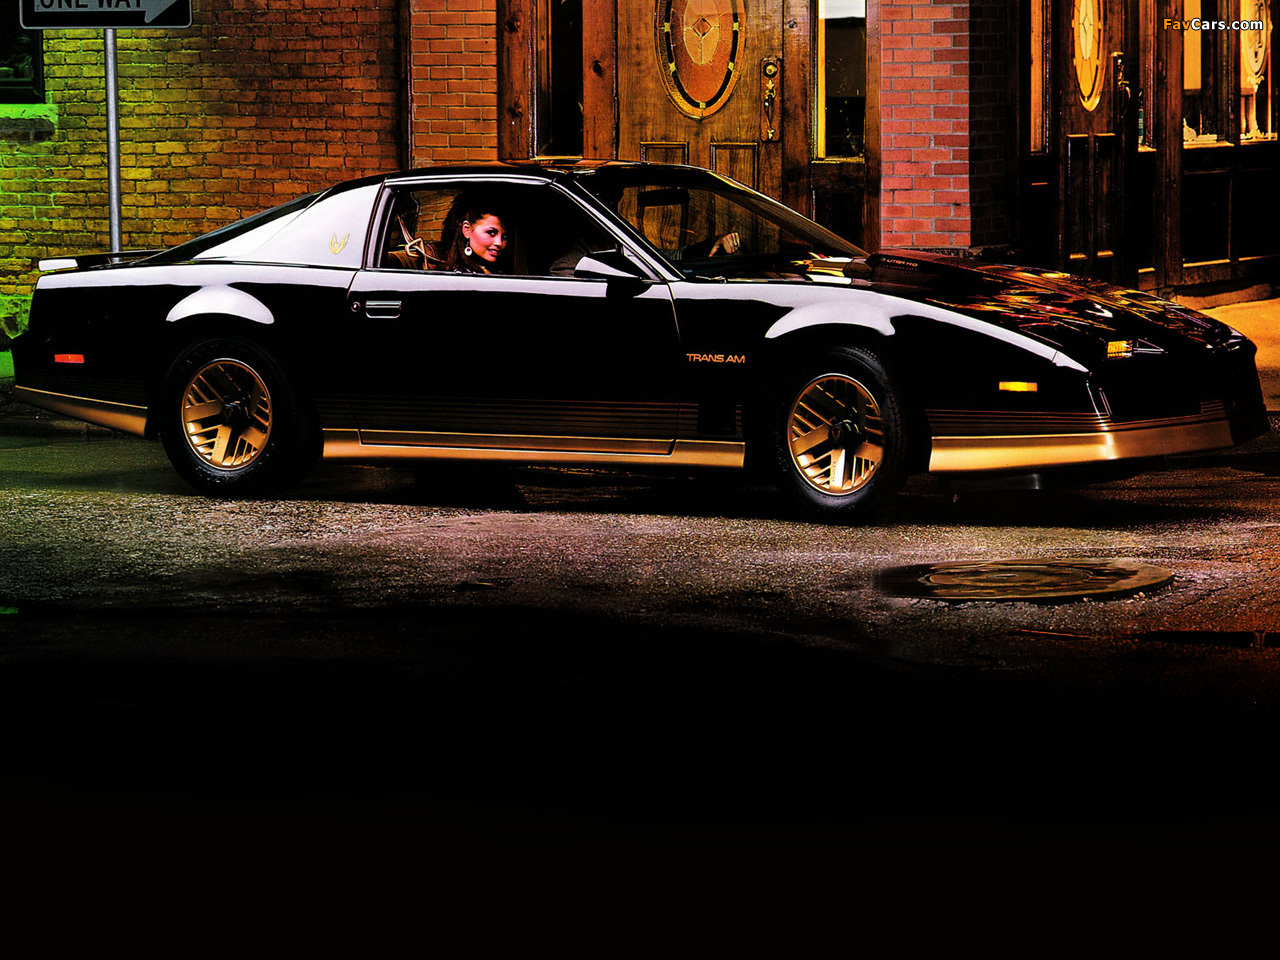 pontiac firebird recaro trans am 1982 84 wallpapers 1280x960. Black Bedroom Furniture Sets. Home Design Ideas